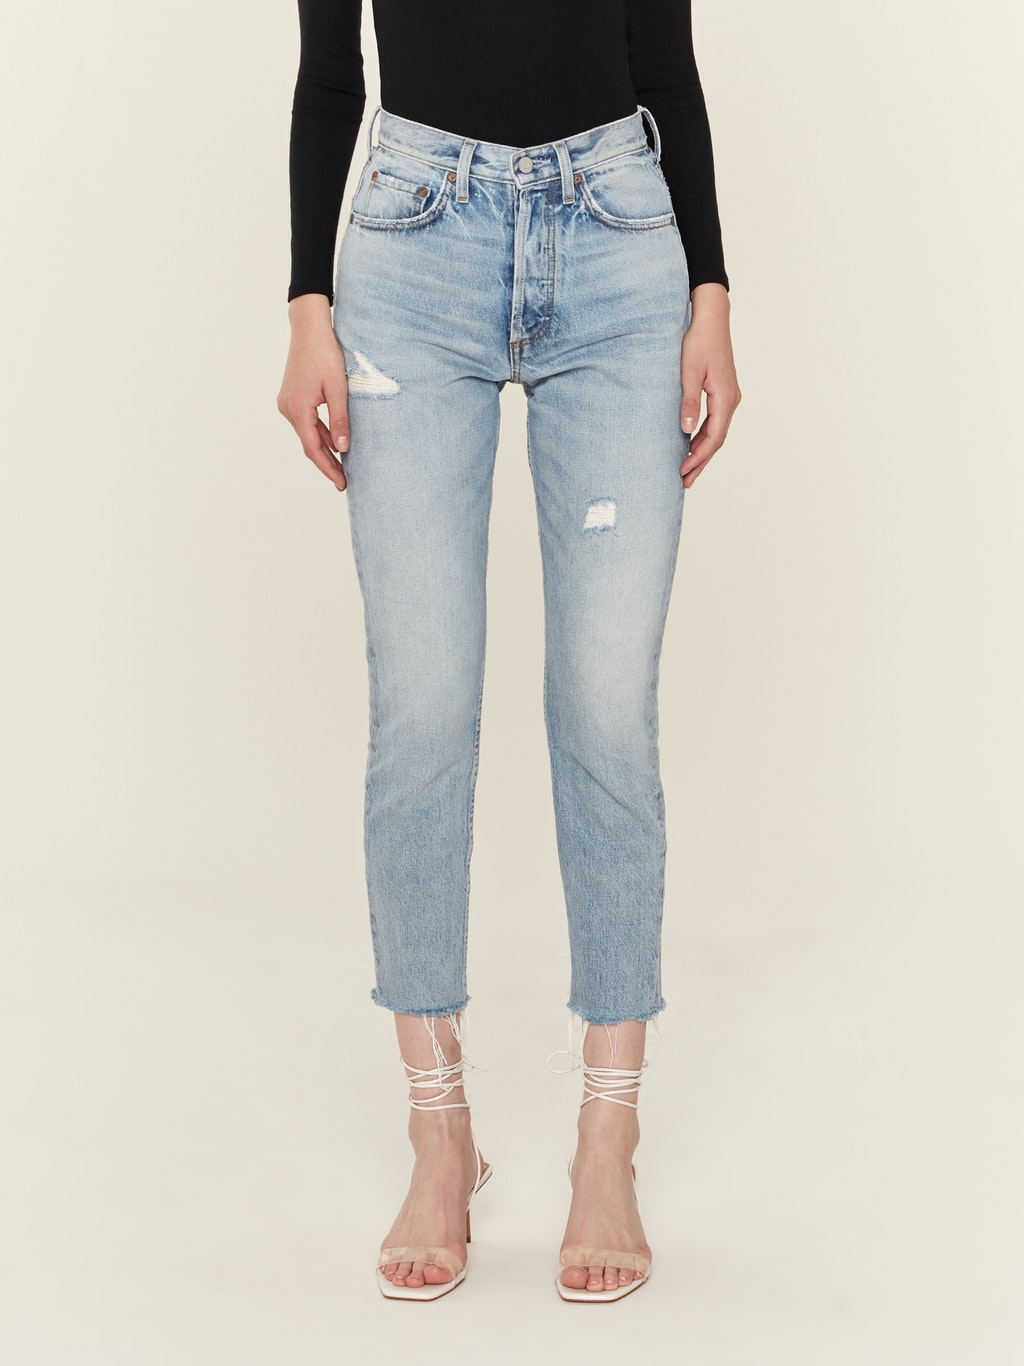 The Billy High Rise Rigid Skinny Crop Jeans